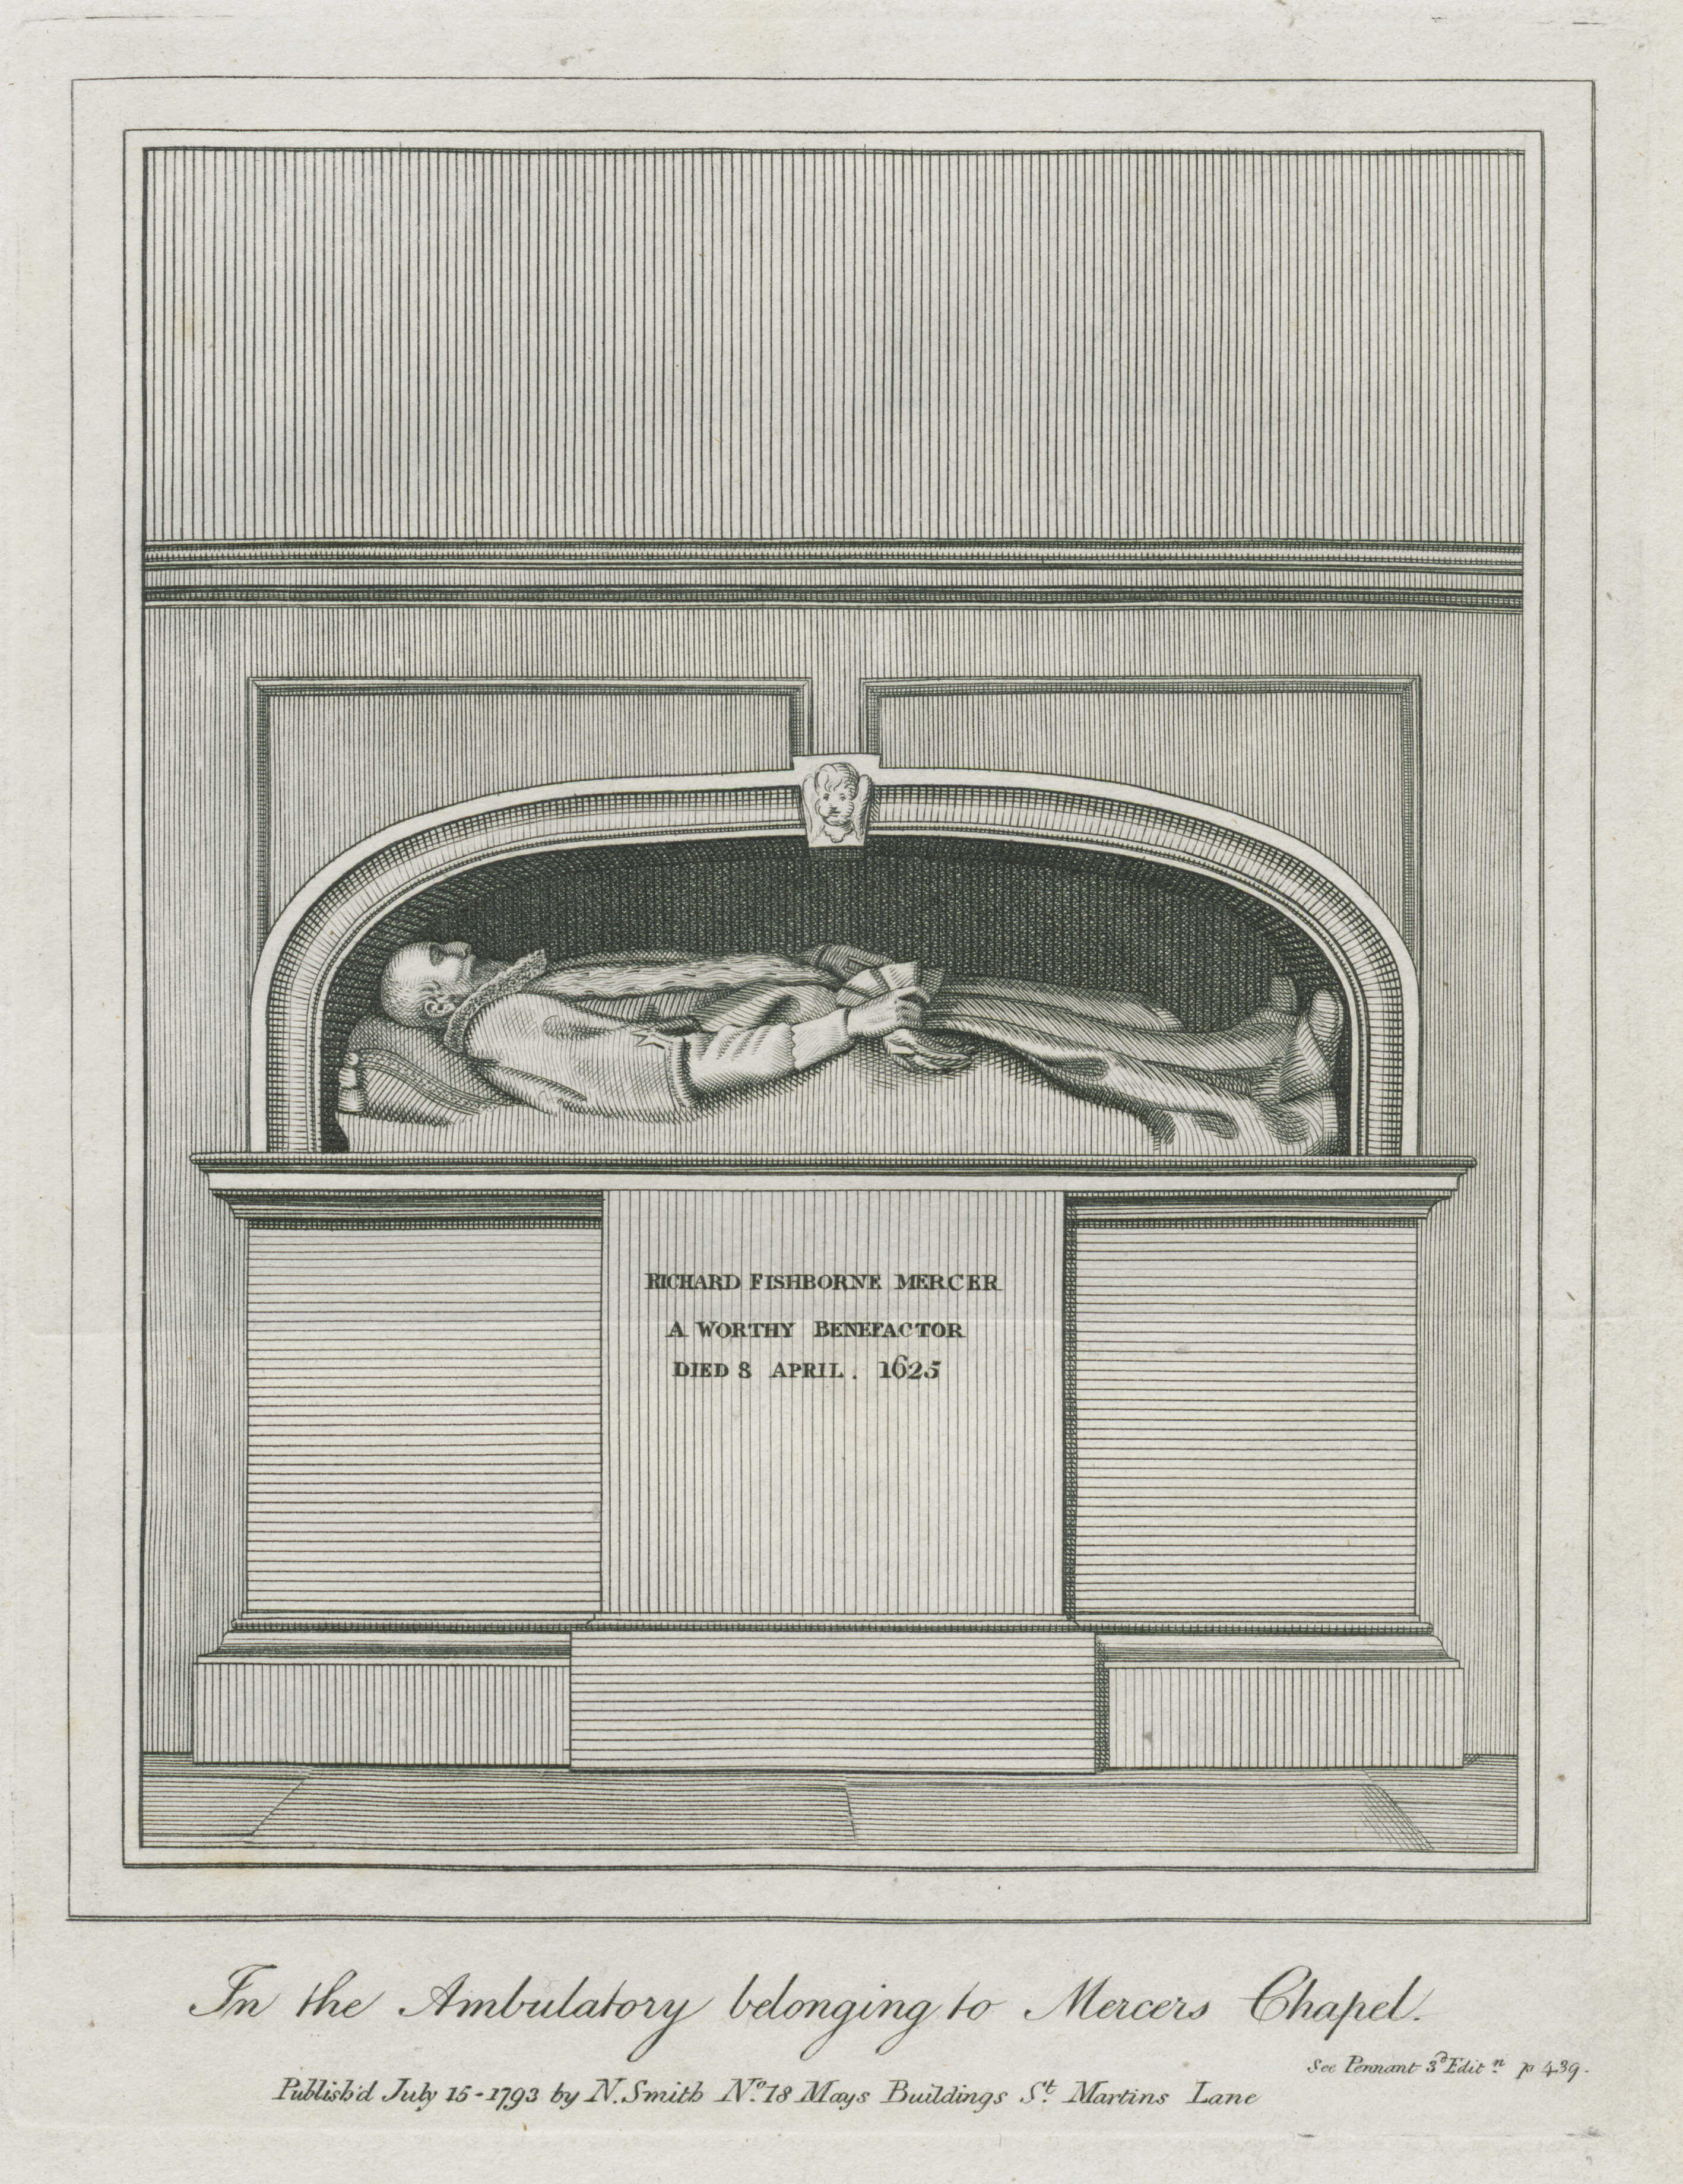 47-in-the-ambulatory-belonging-to-mercers-chapel-monument-for-richard-fishborne-mercer